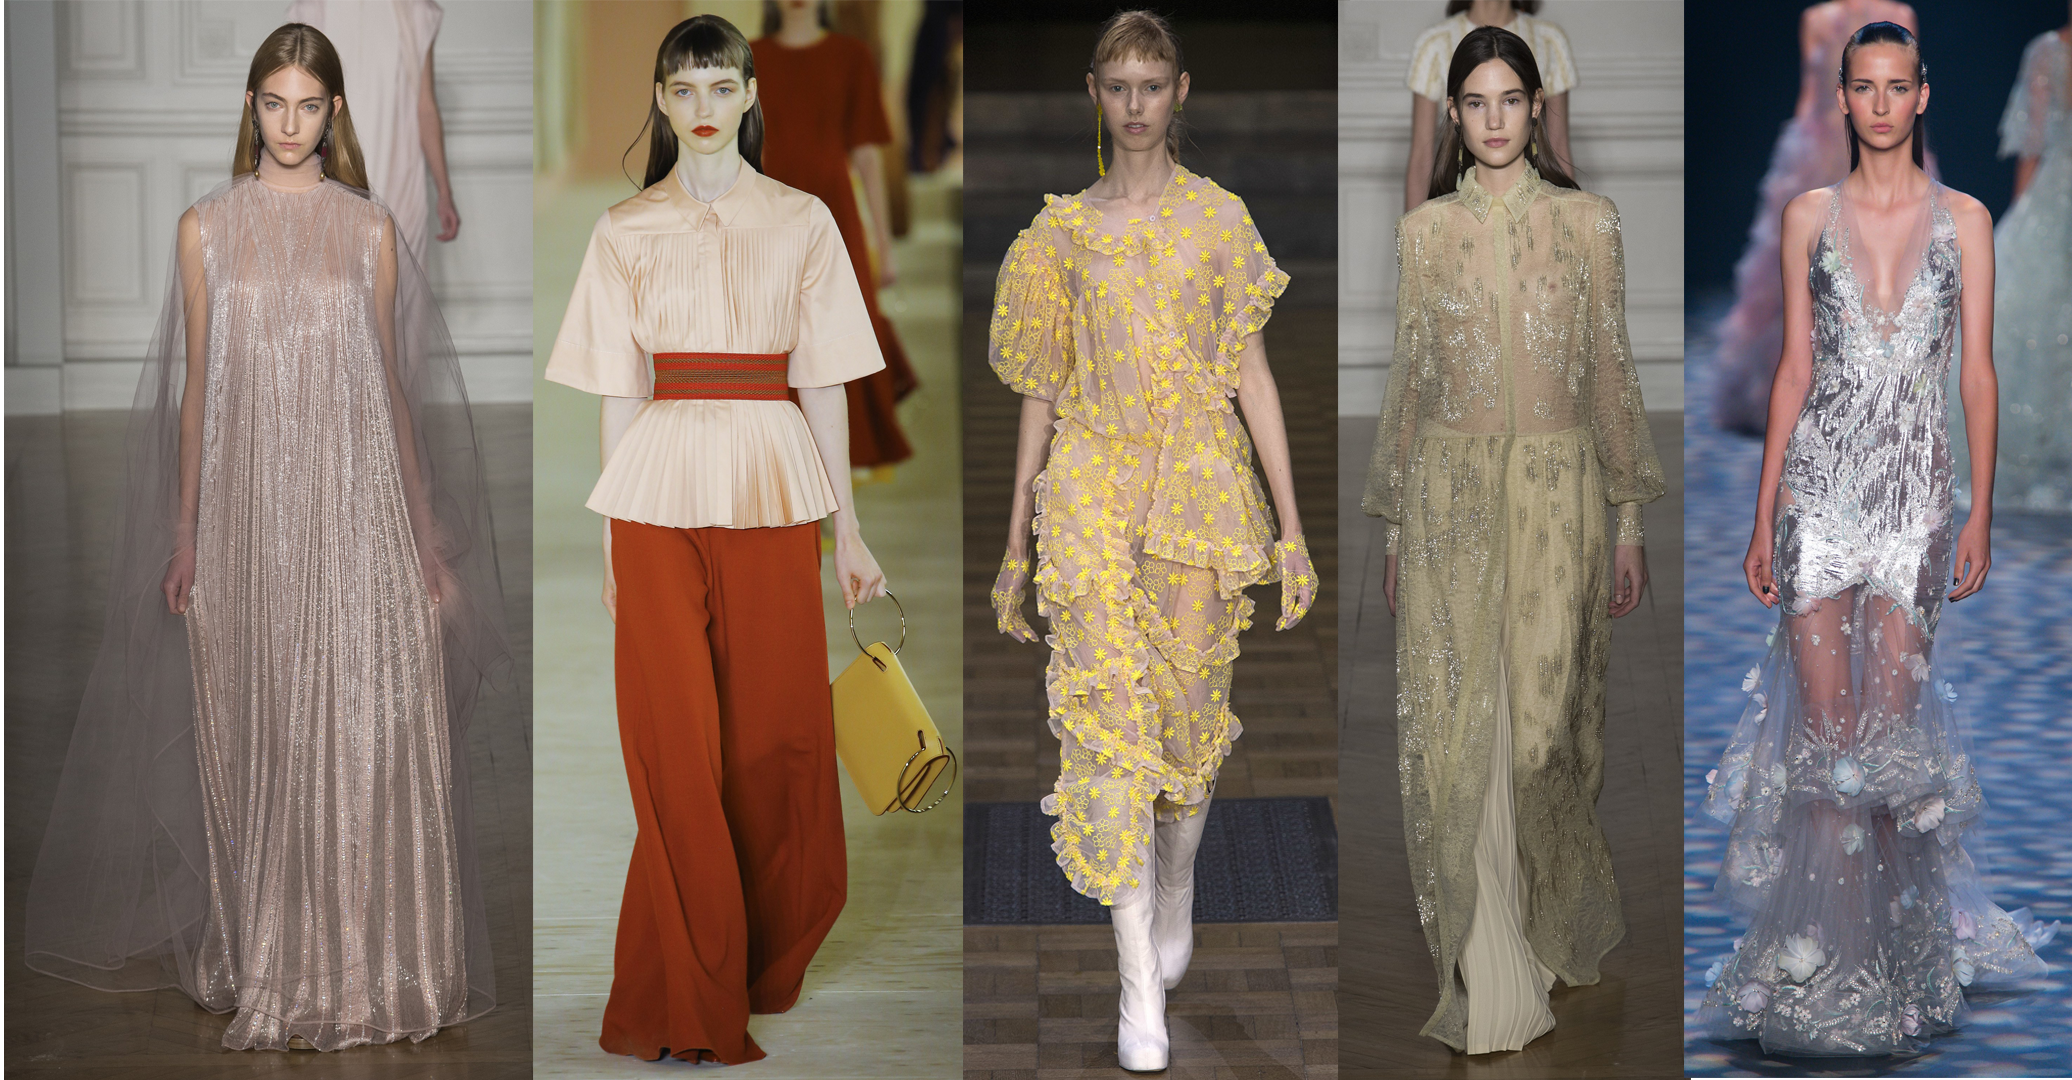 Left to Right: Valentino Spring 17 Couture, Roksanda RTW SS17, Simone Rocha RTW SS17, Valentino Spring 17 Couture, Marchesa RTW SS17